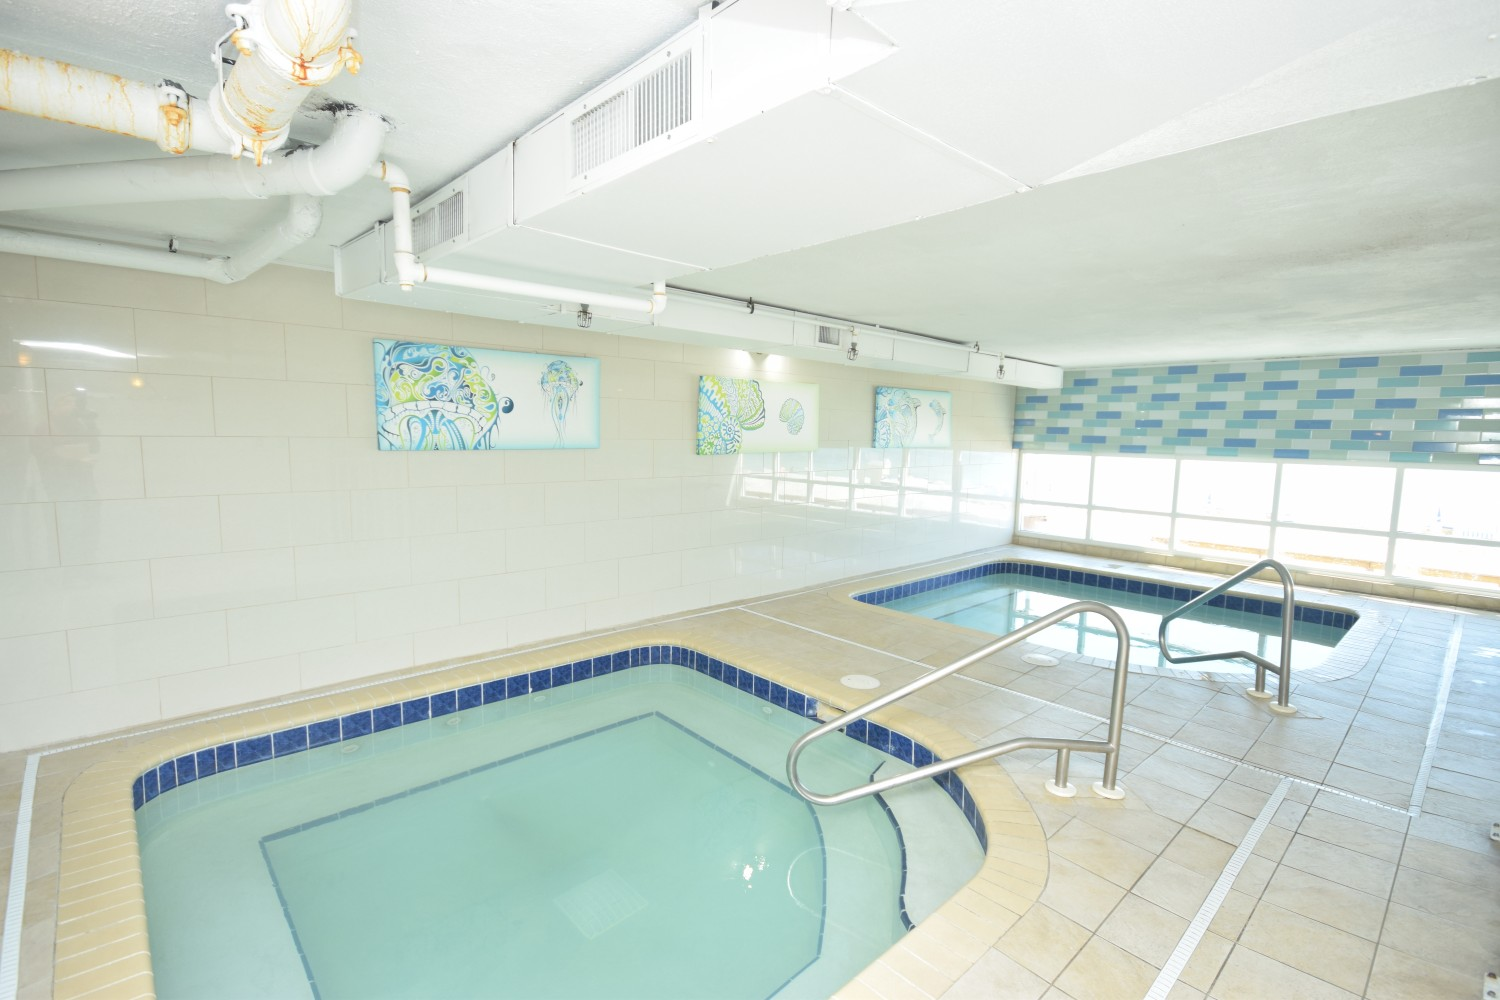 Two Large Spa's With View of The Gulf of Mexico